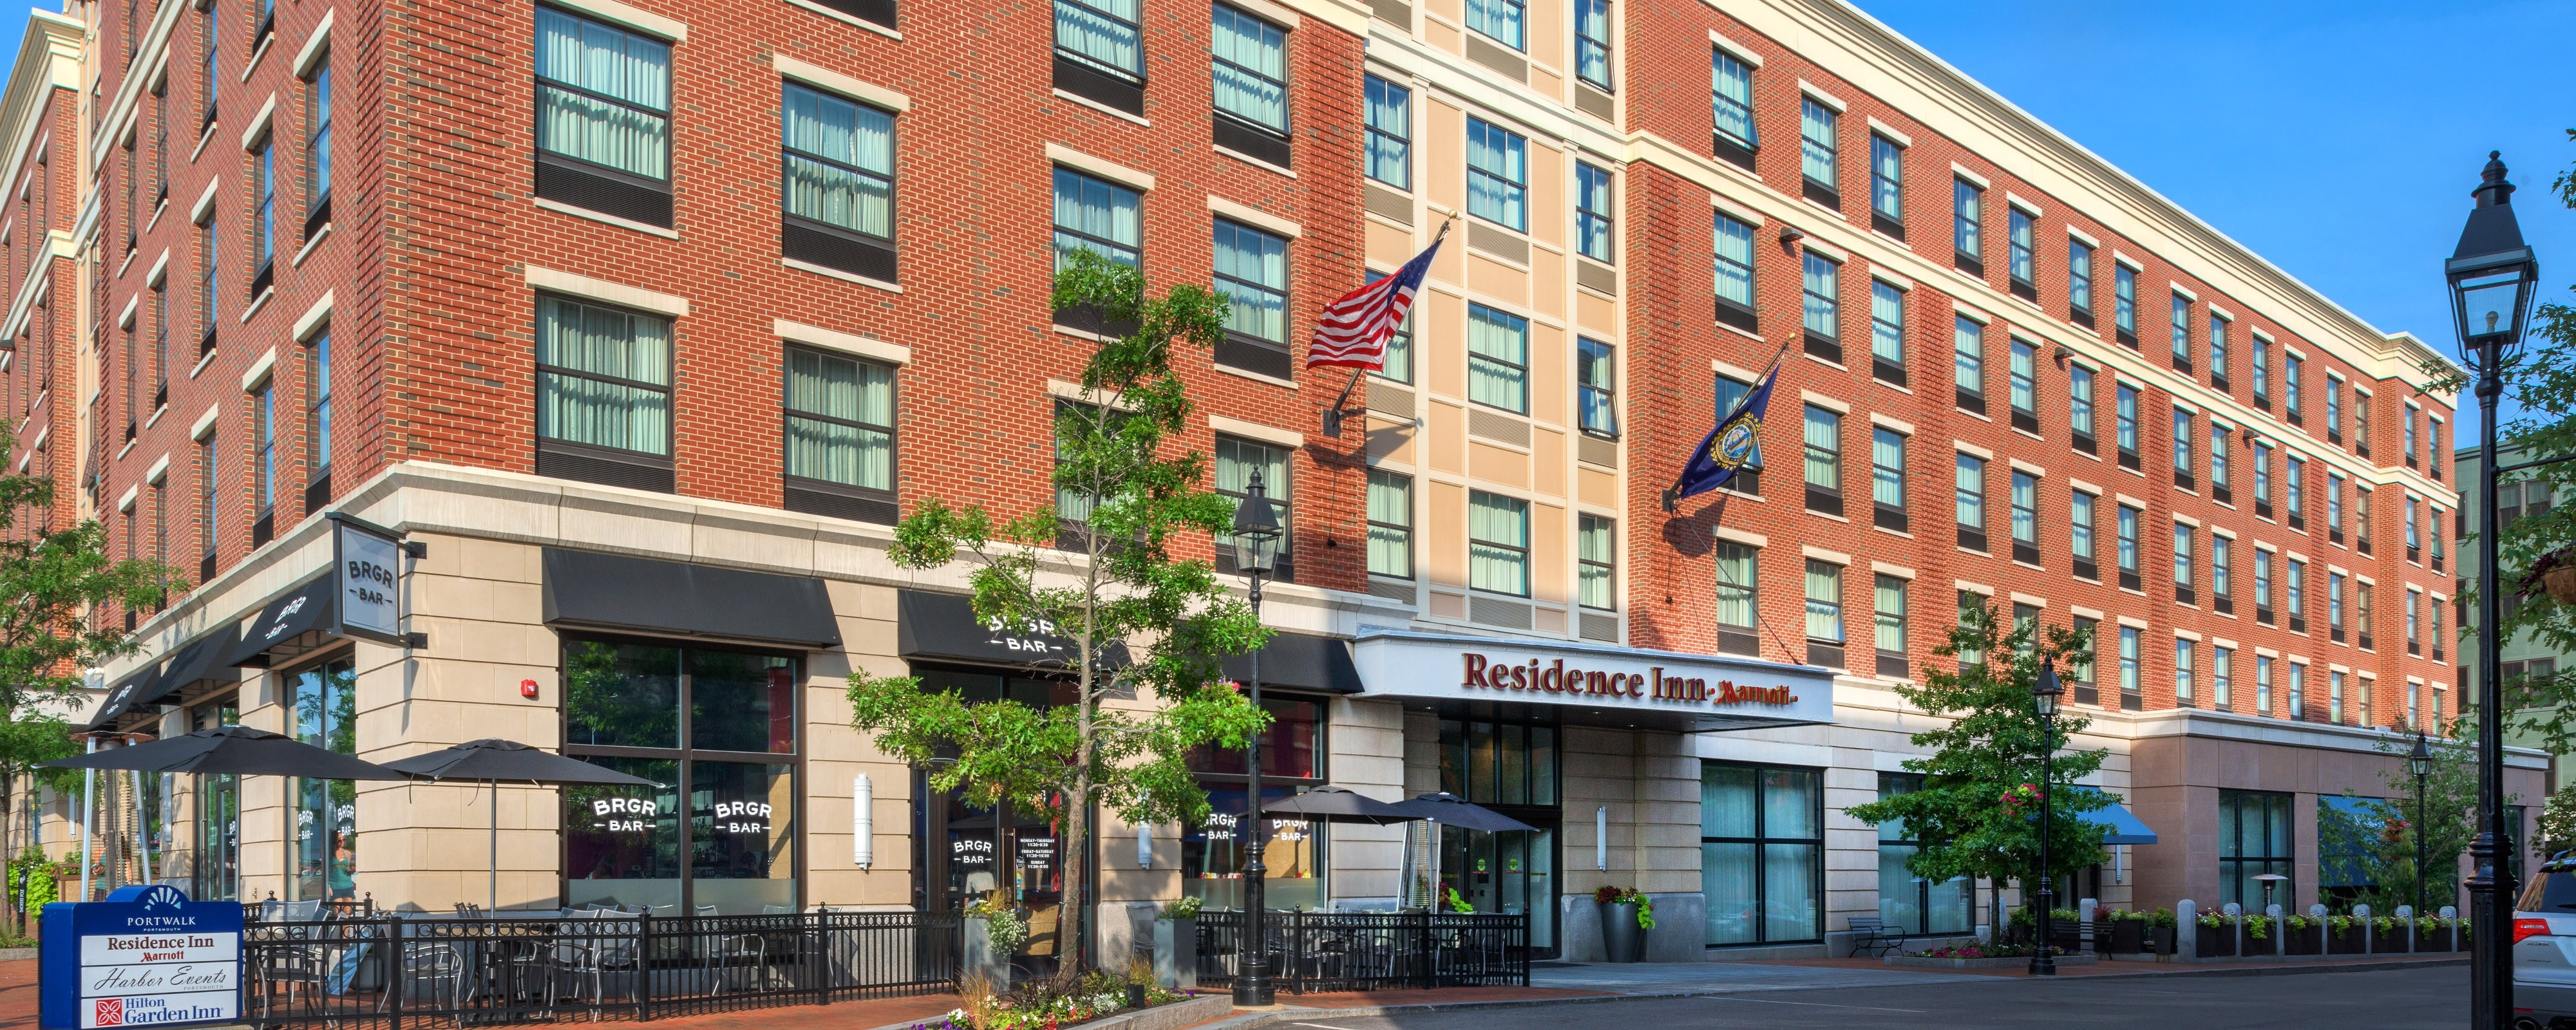 Residence Inn Portsmouth Downtown Waterfront Portsmouth Hotel Facts